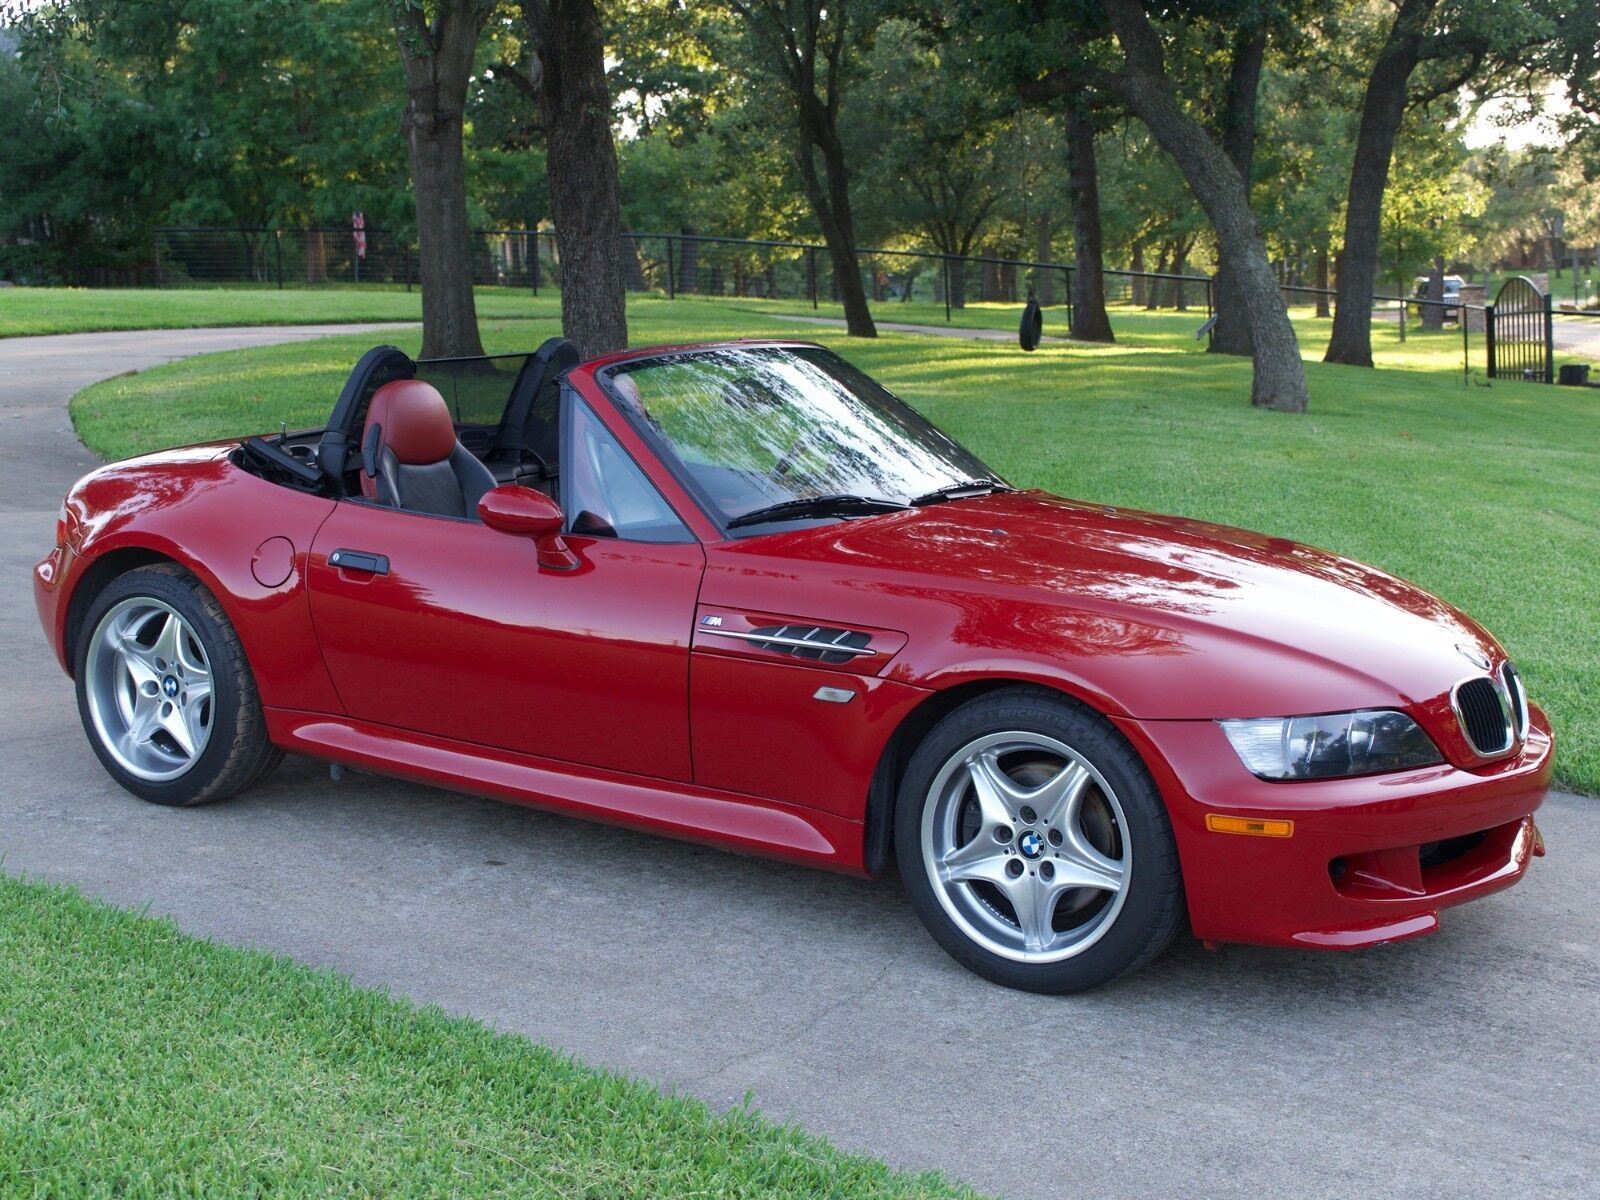 2000 Bmw Z3 M Roadster Imola Red One Of A Kind Only